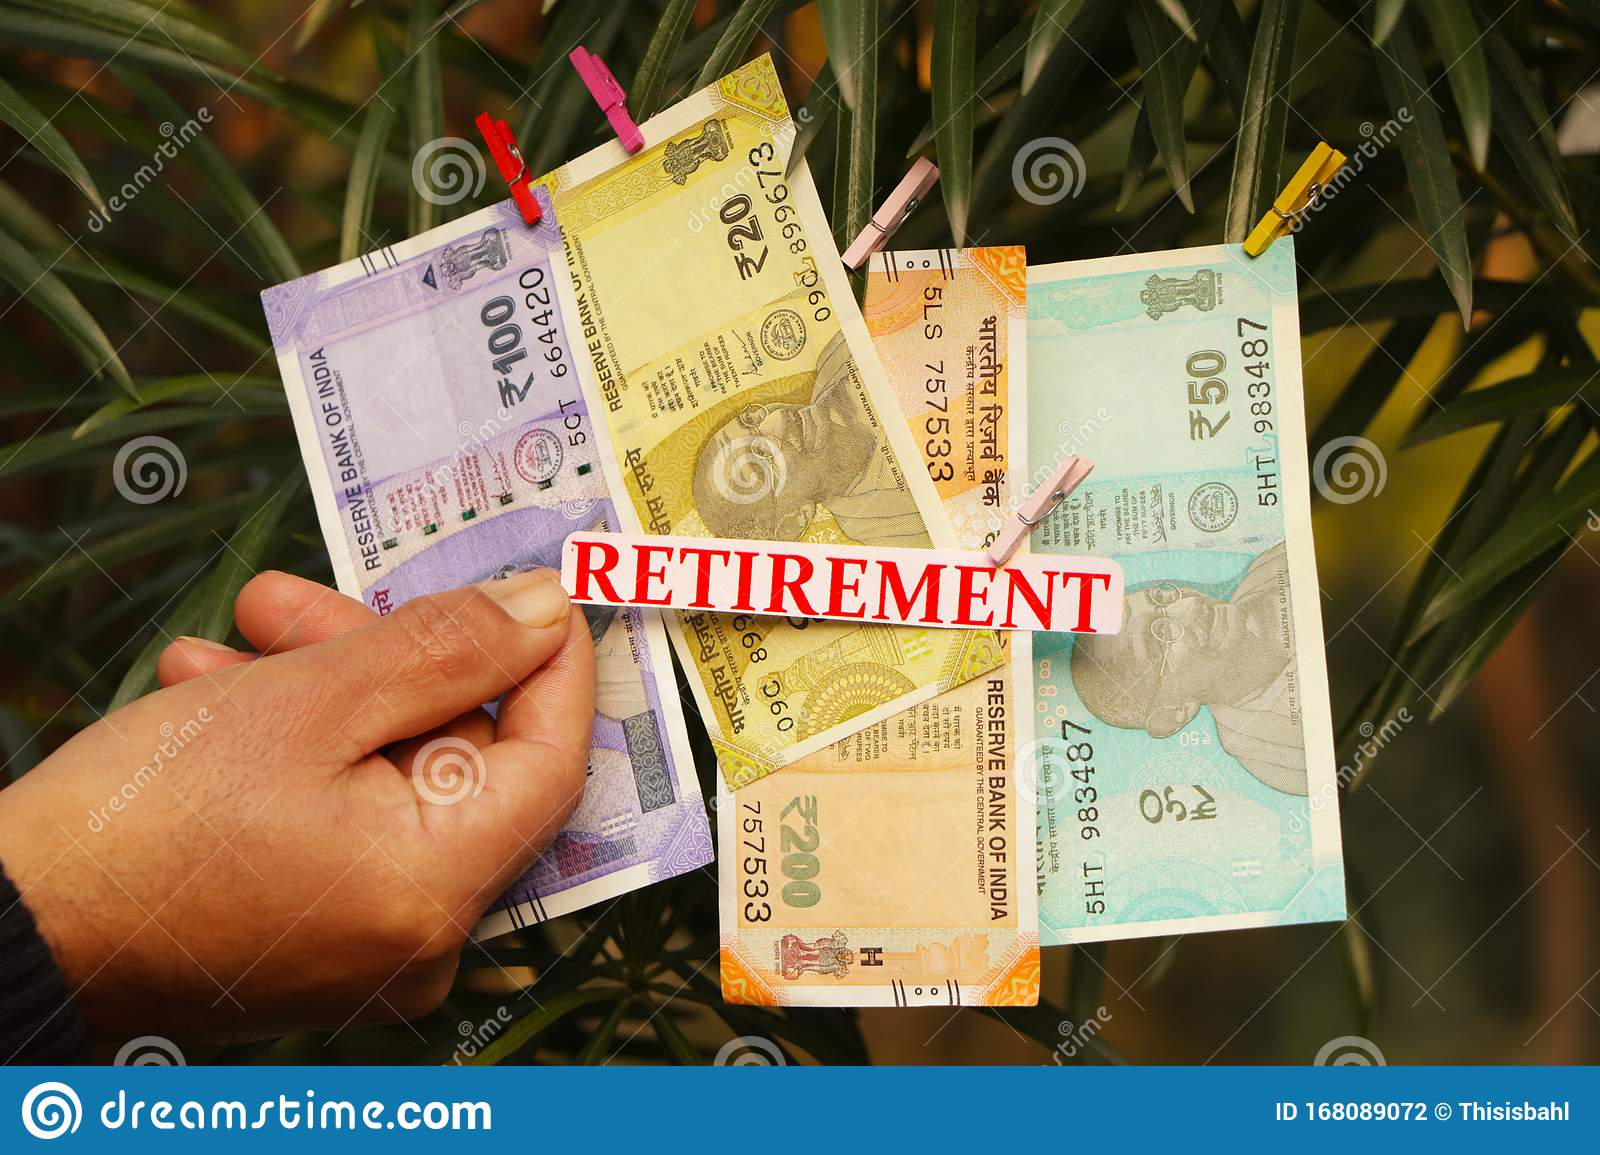 Retirement Text Indian Currency Stock Photo Image Of Face Male 168089072